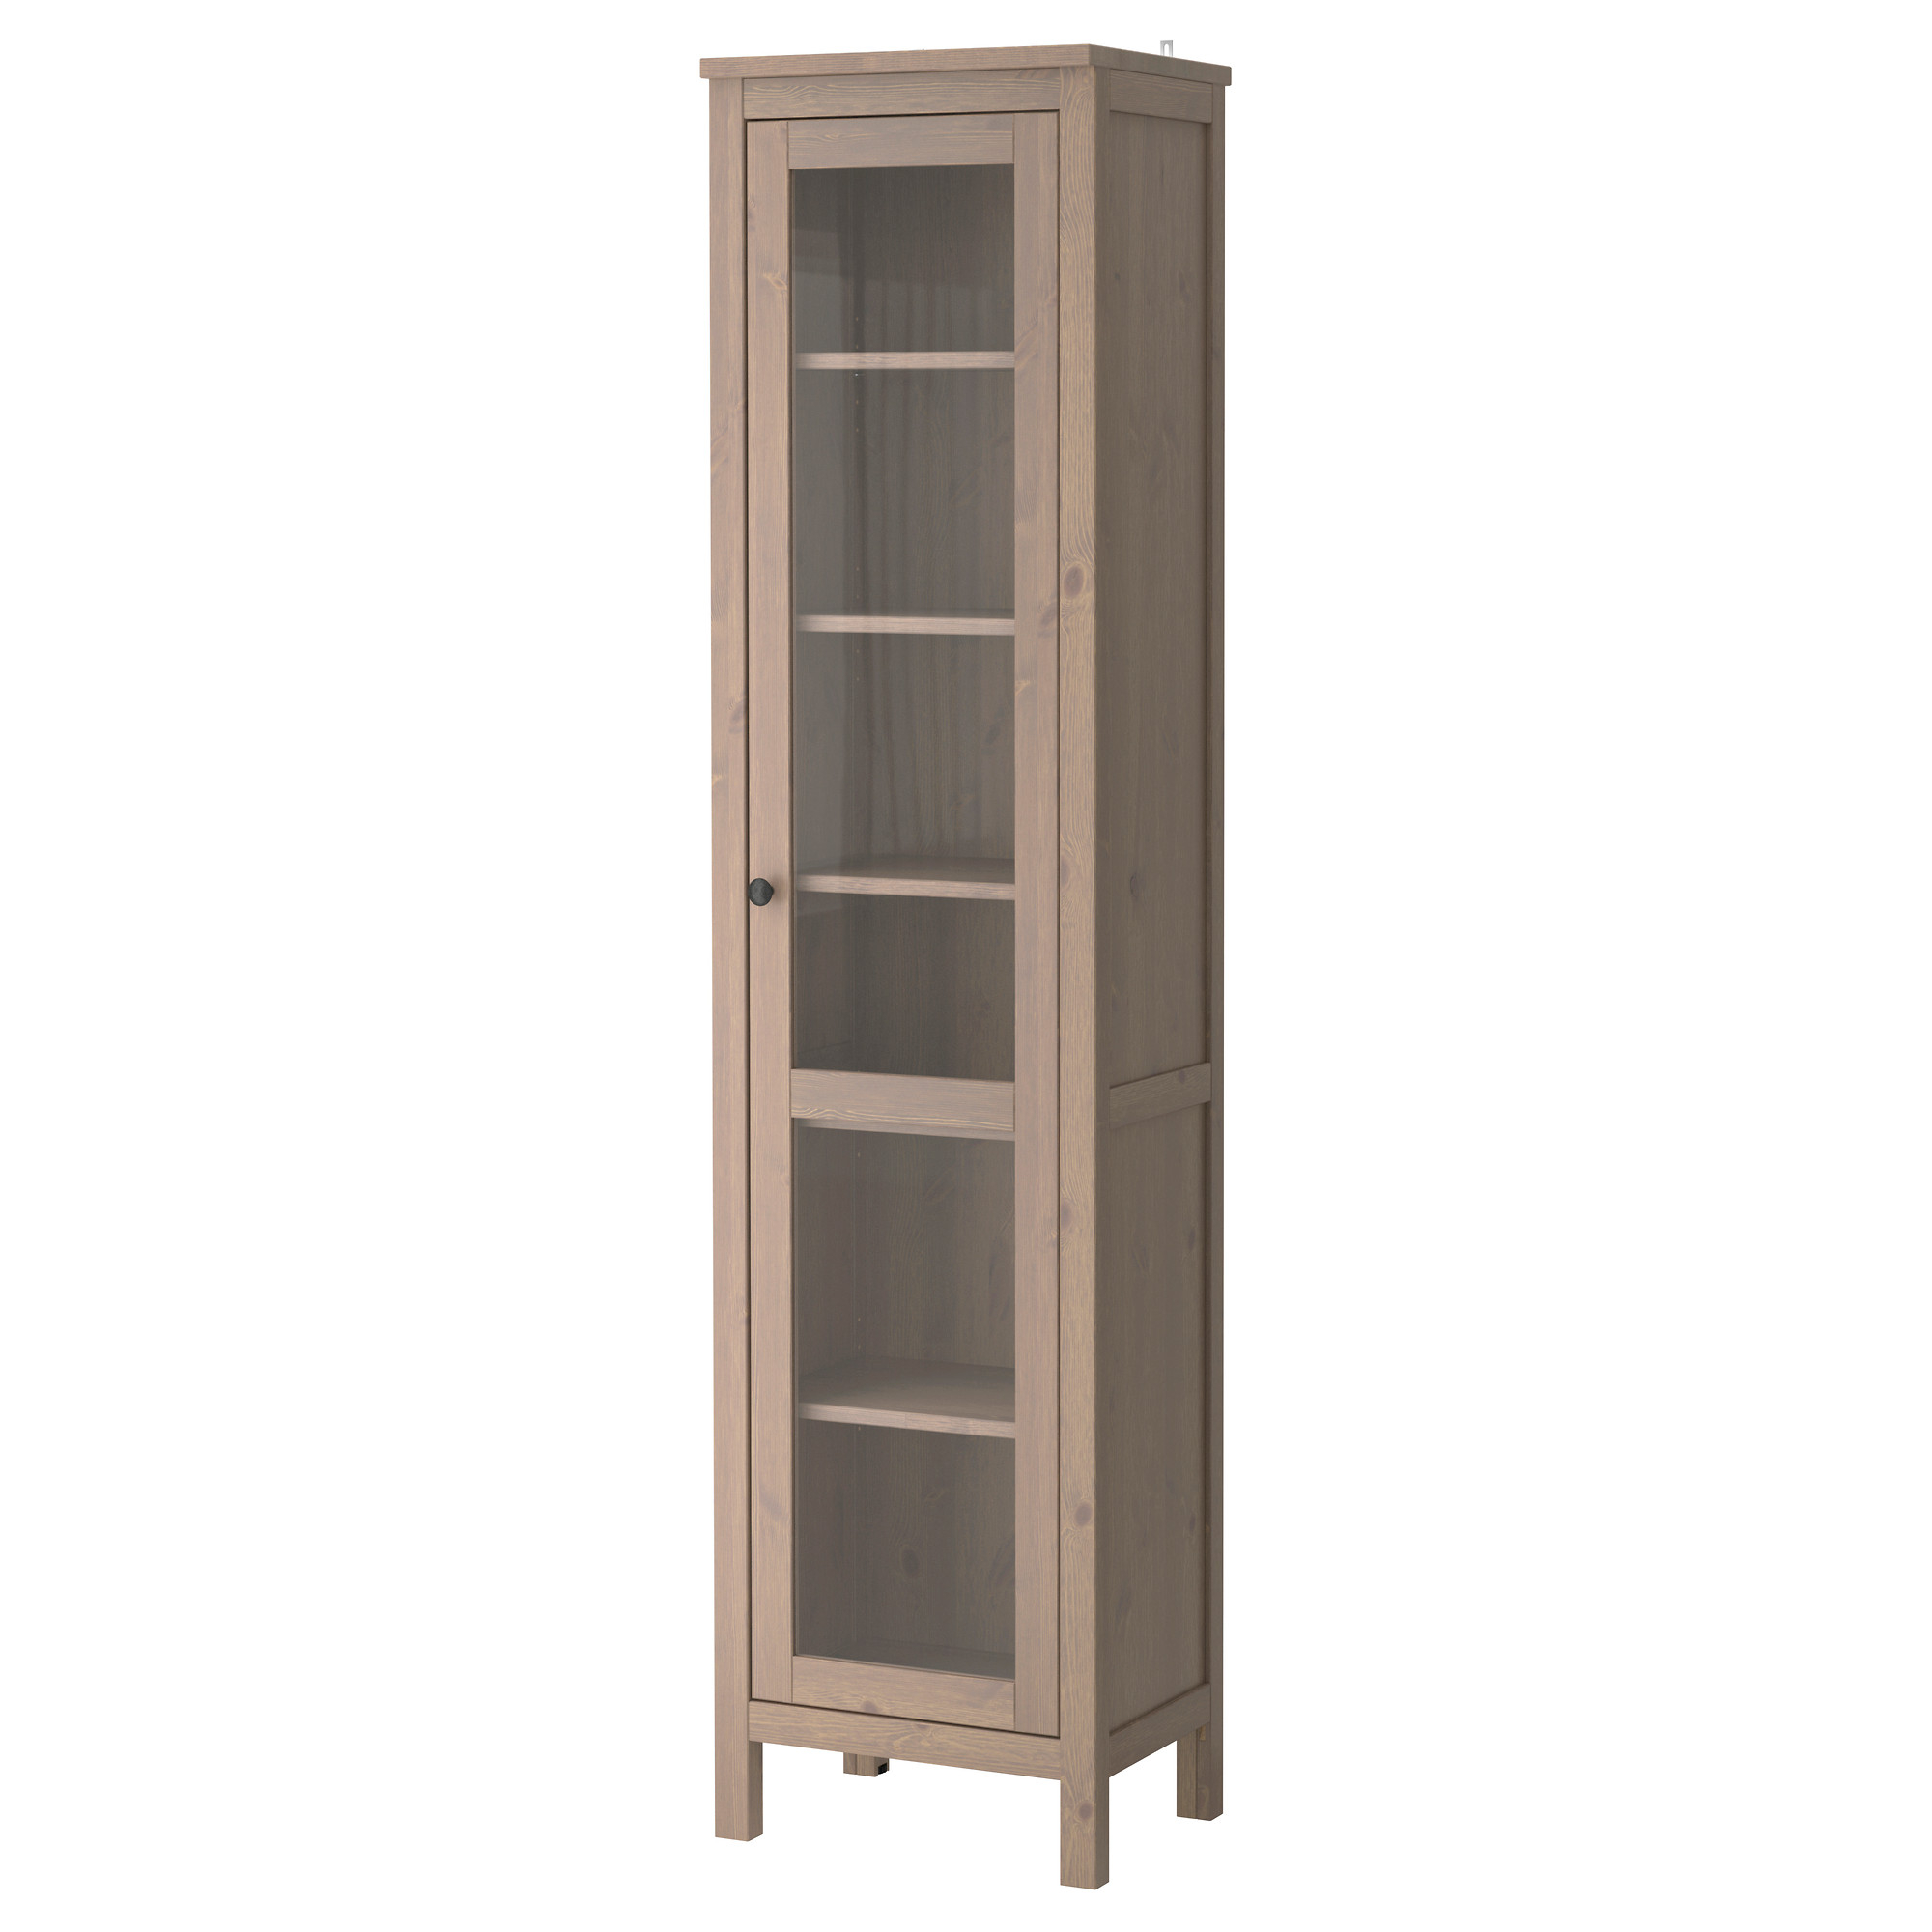 Narrow Wood Display Cabinets Display Cabinet